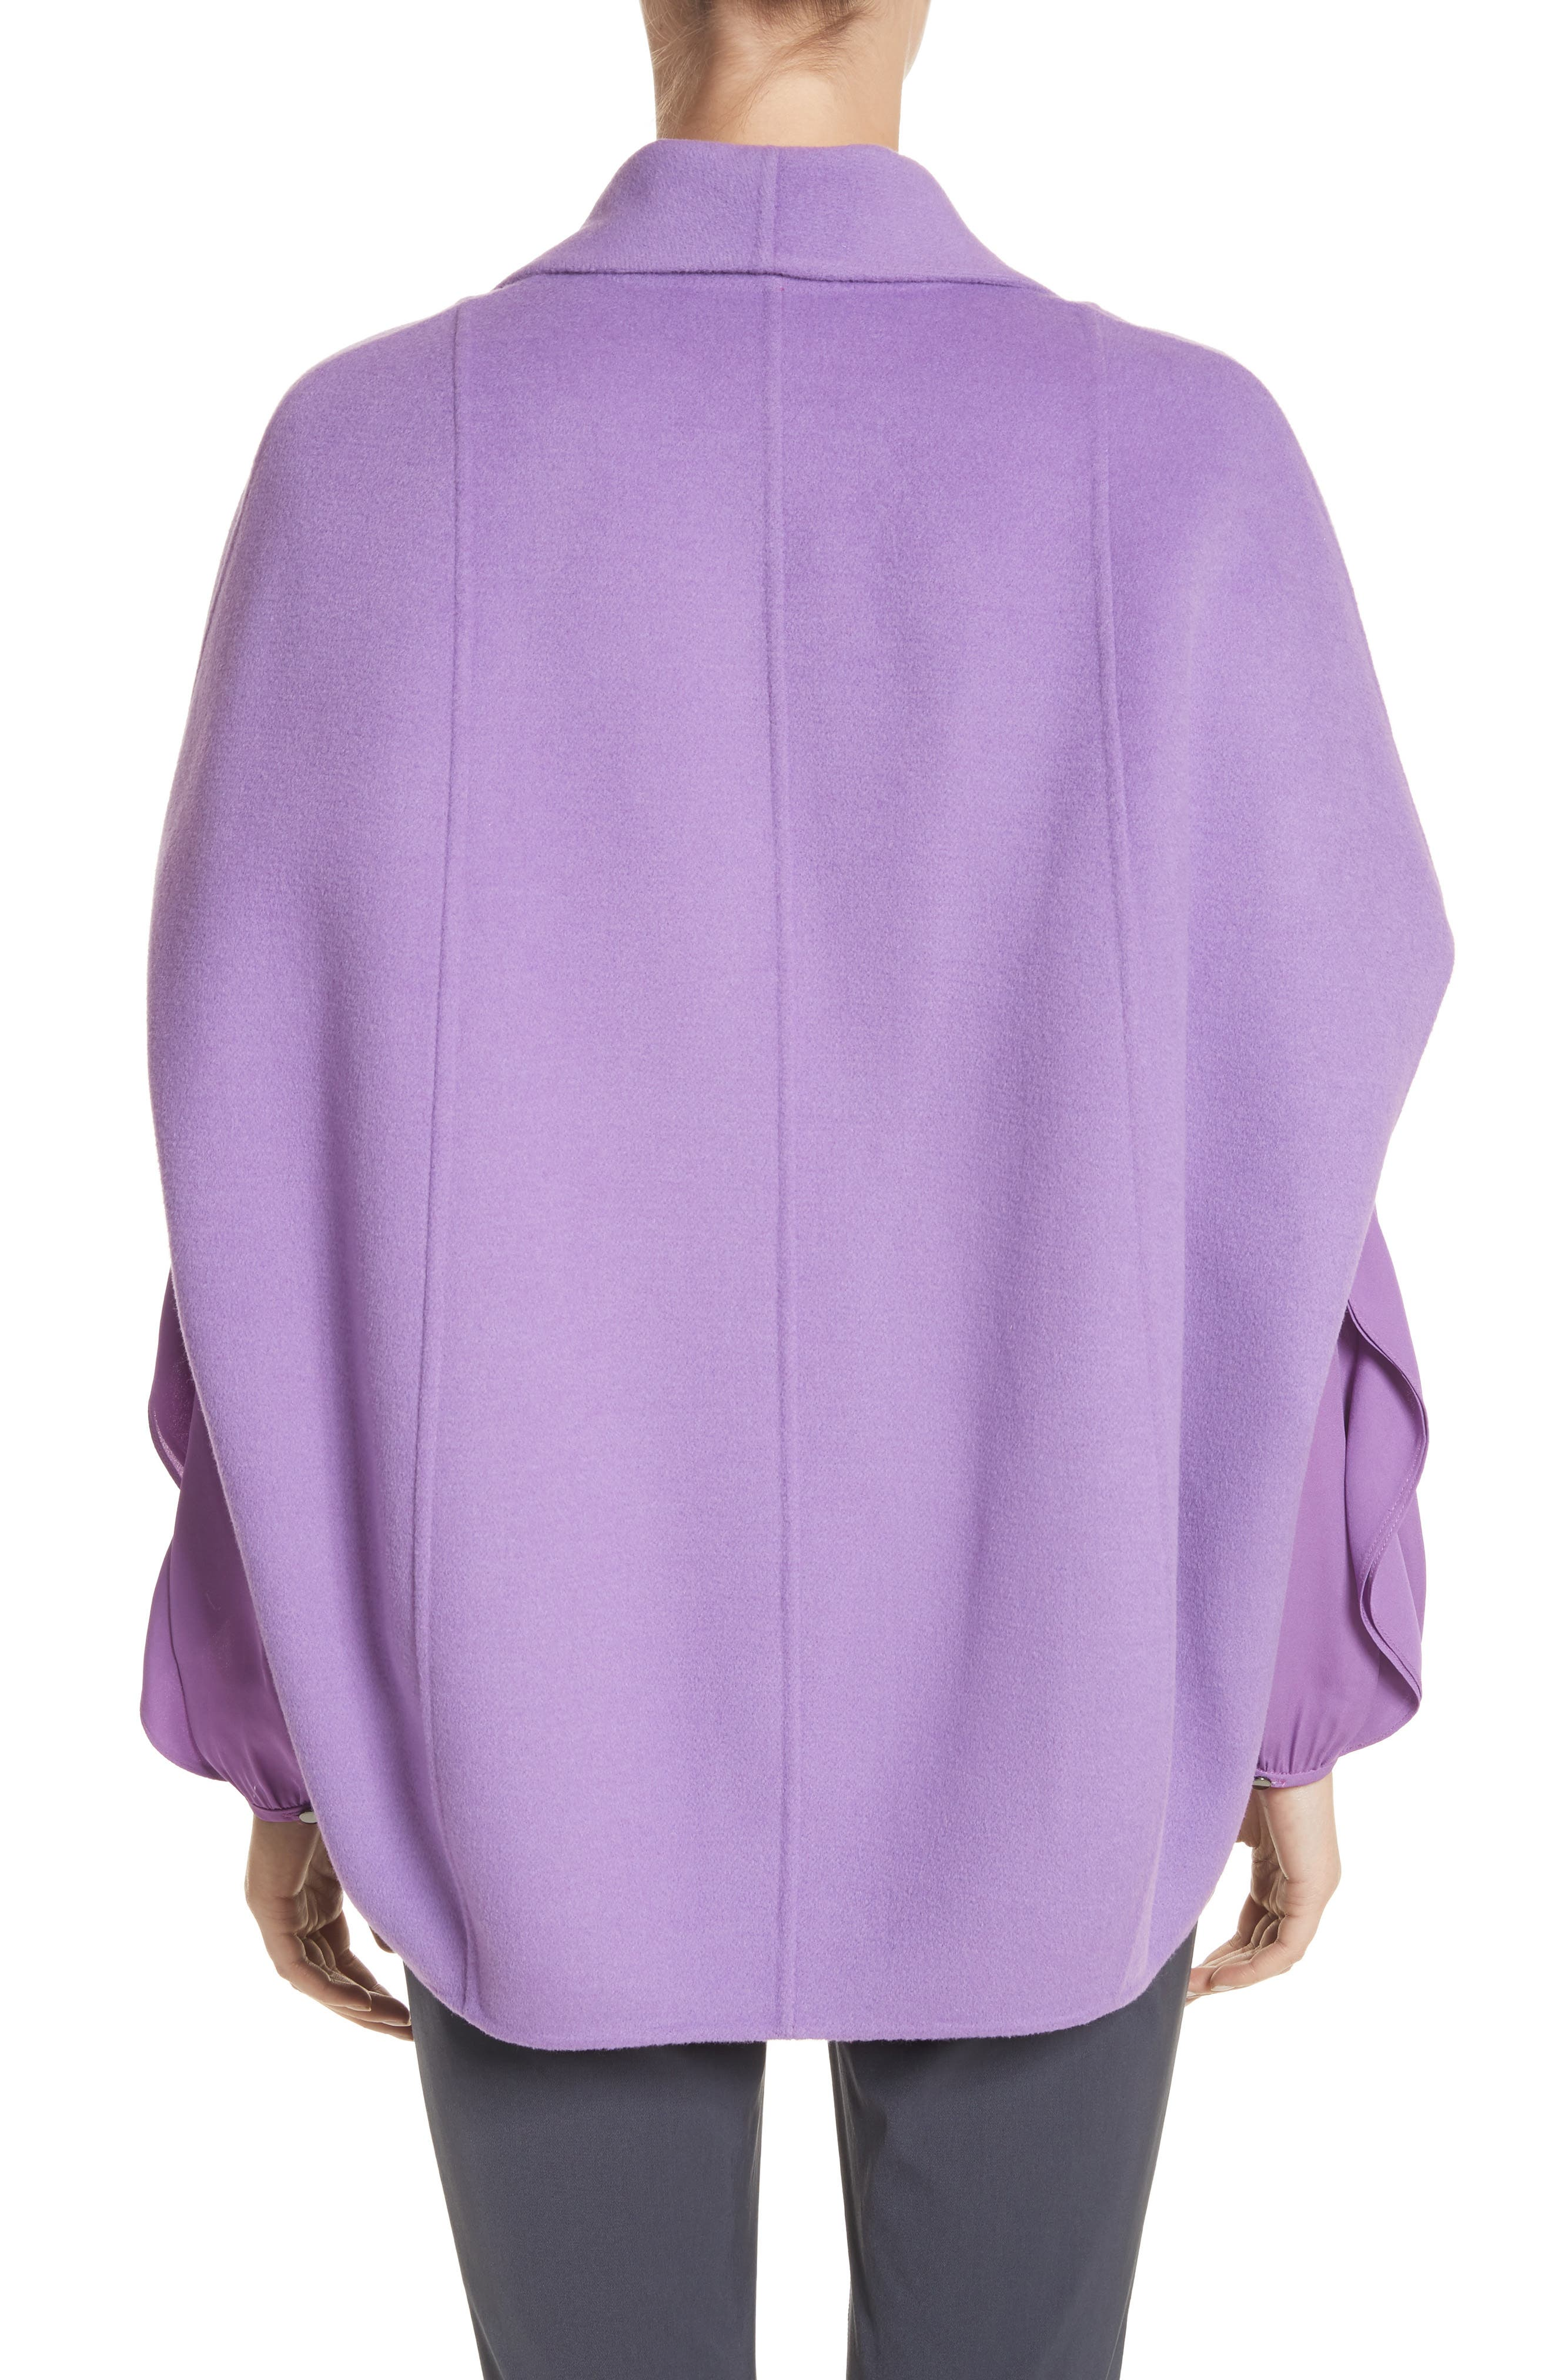 Double Face Wool & Angora Blend Jacket,                             Alternate thumbnail 2, color,                             Dark Orchid